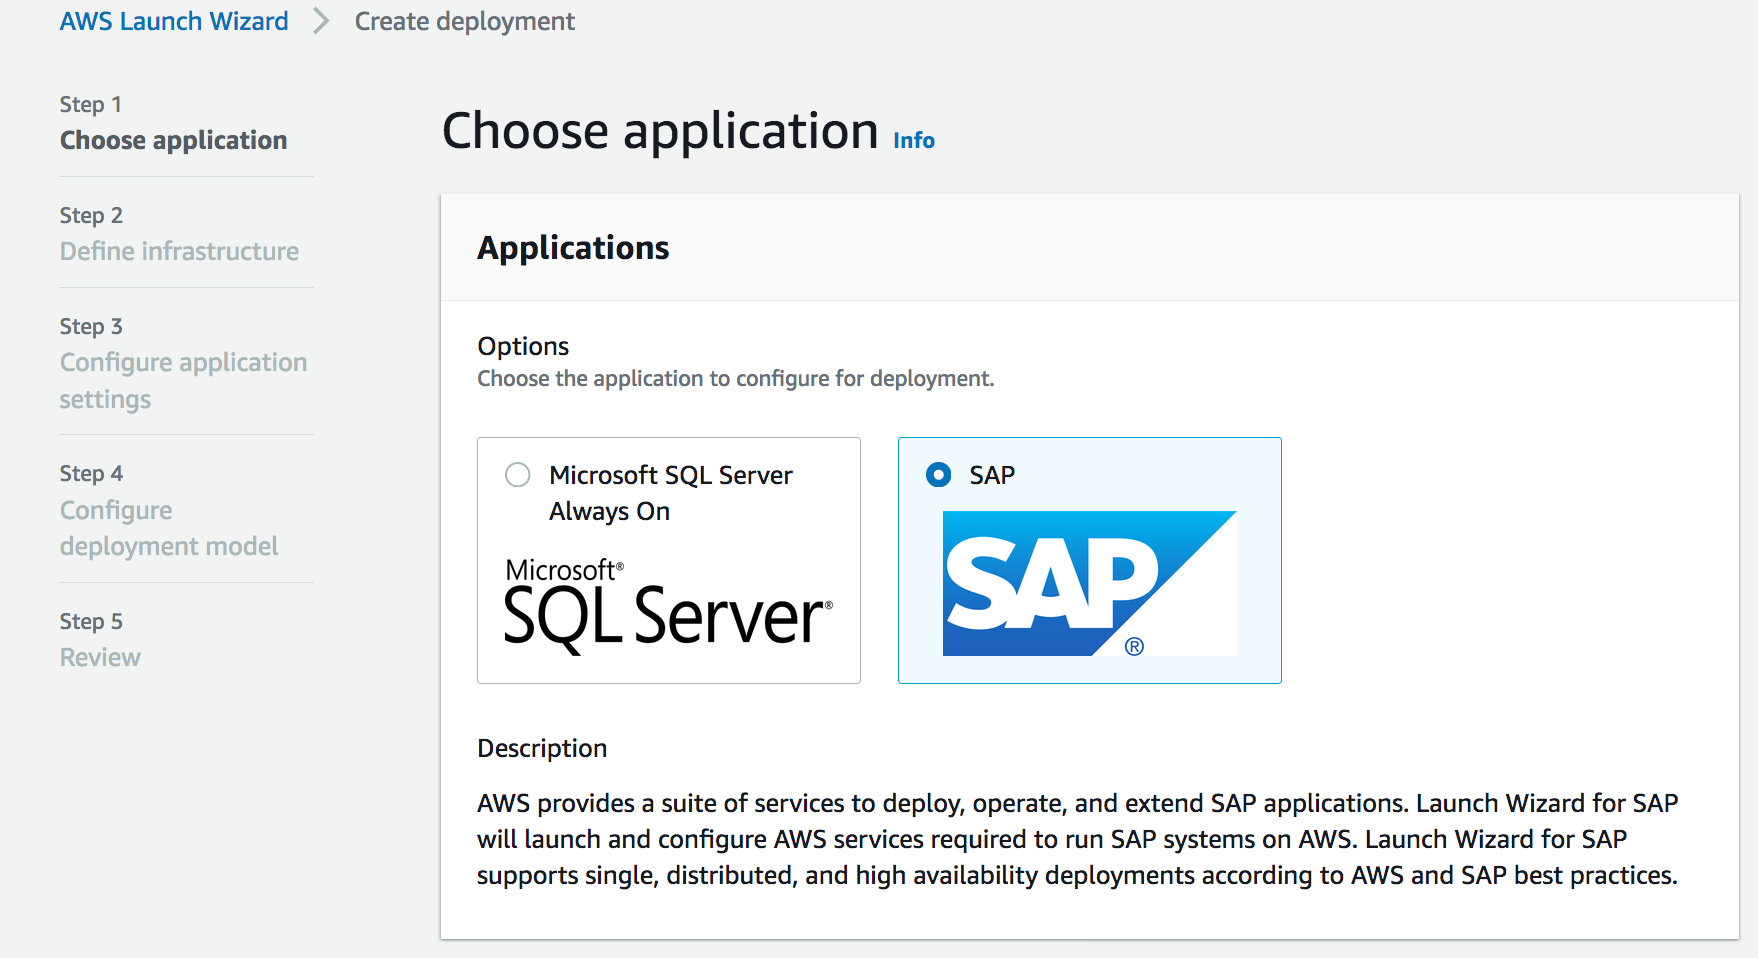 2020 aws launch wizard for sap 0